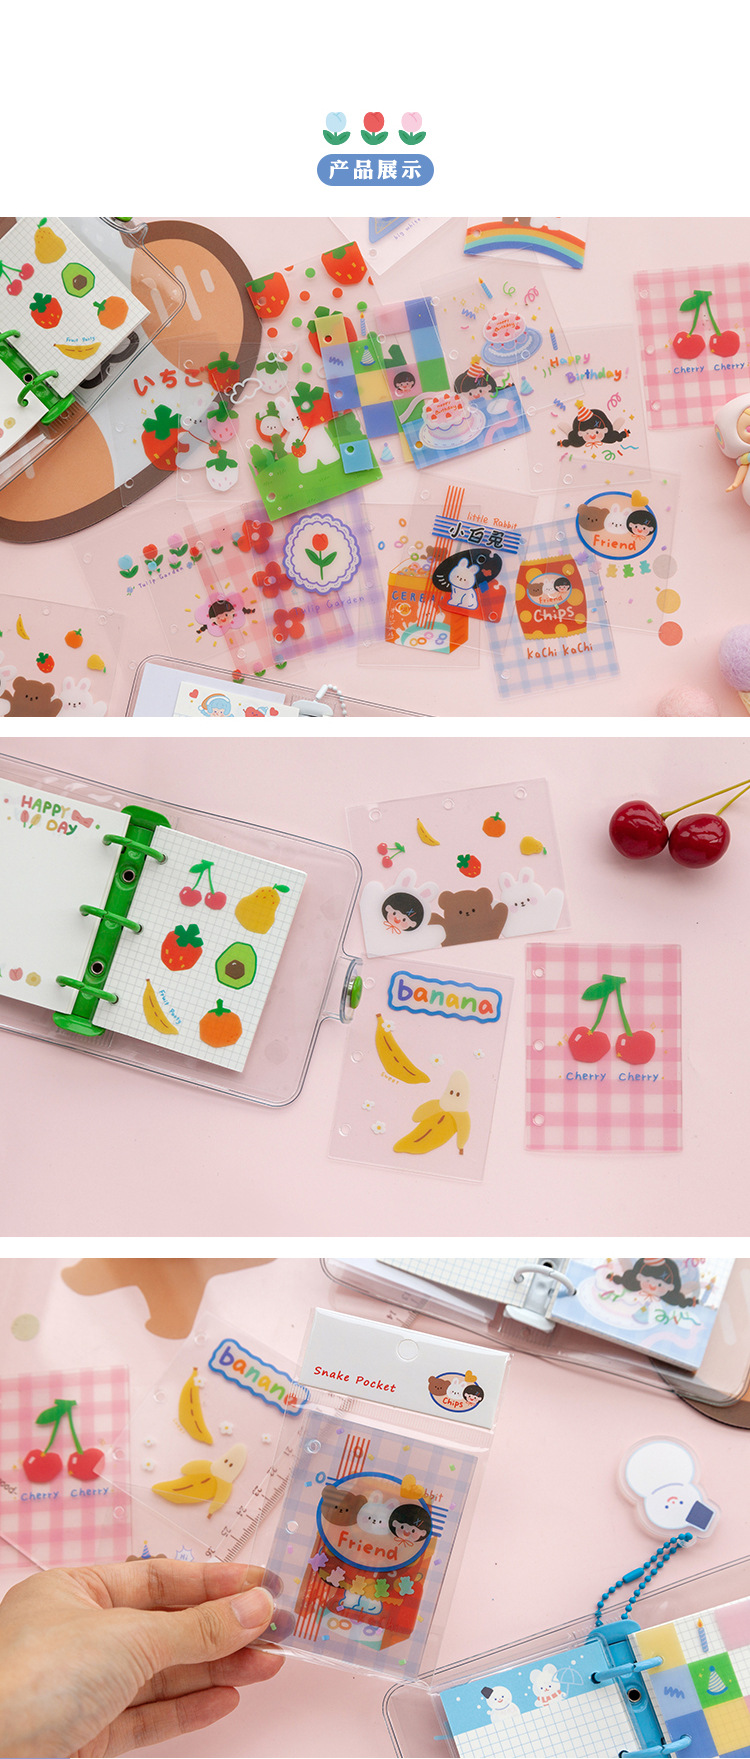 Life Fun Series 4pcs PVC Kawii 3-hole mini book separator Notebook Spiral Binder Index Page Dividers Diary Book Stationery